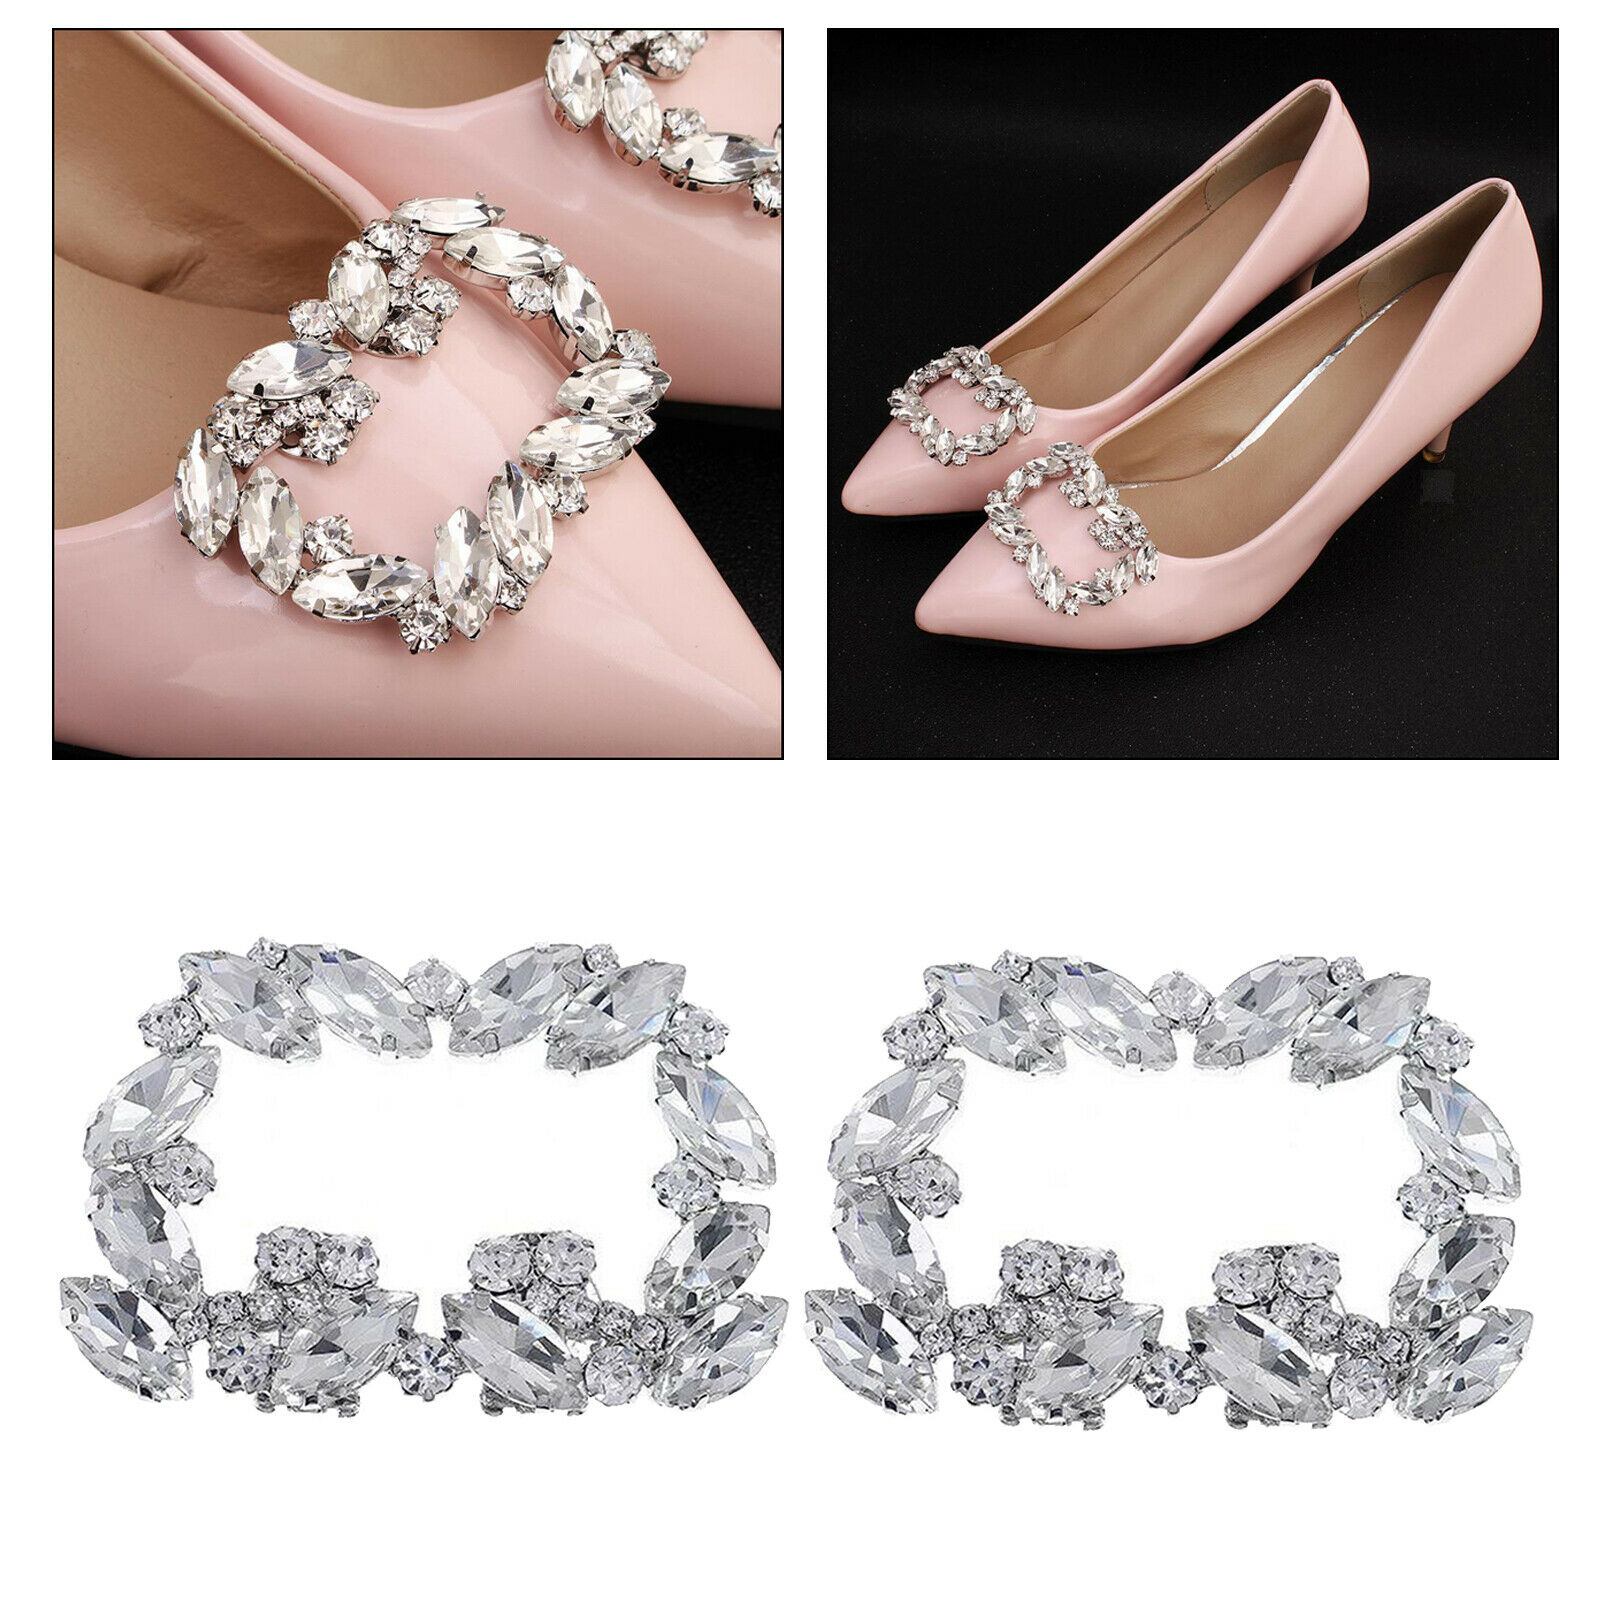 Crystal Shoe Clips Lady Decorative Shoes Square Buckle Clips Prom Shoe Charms